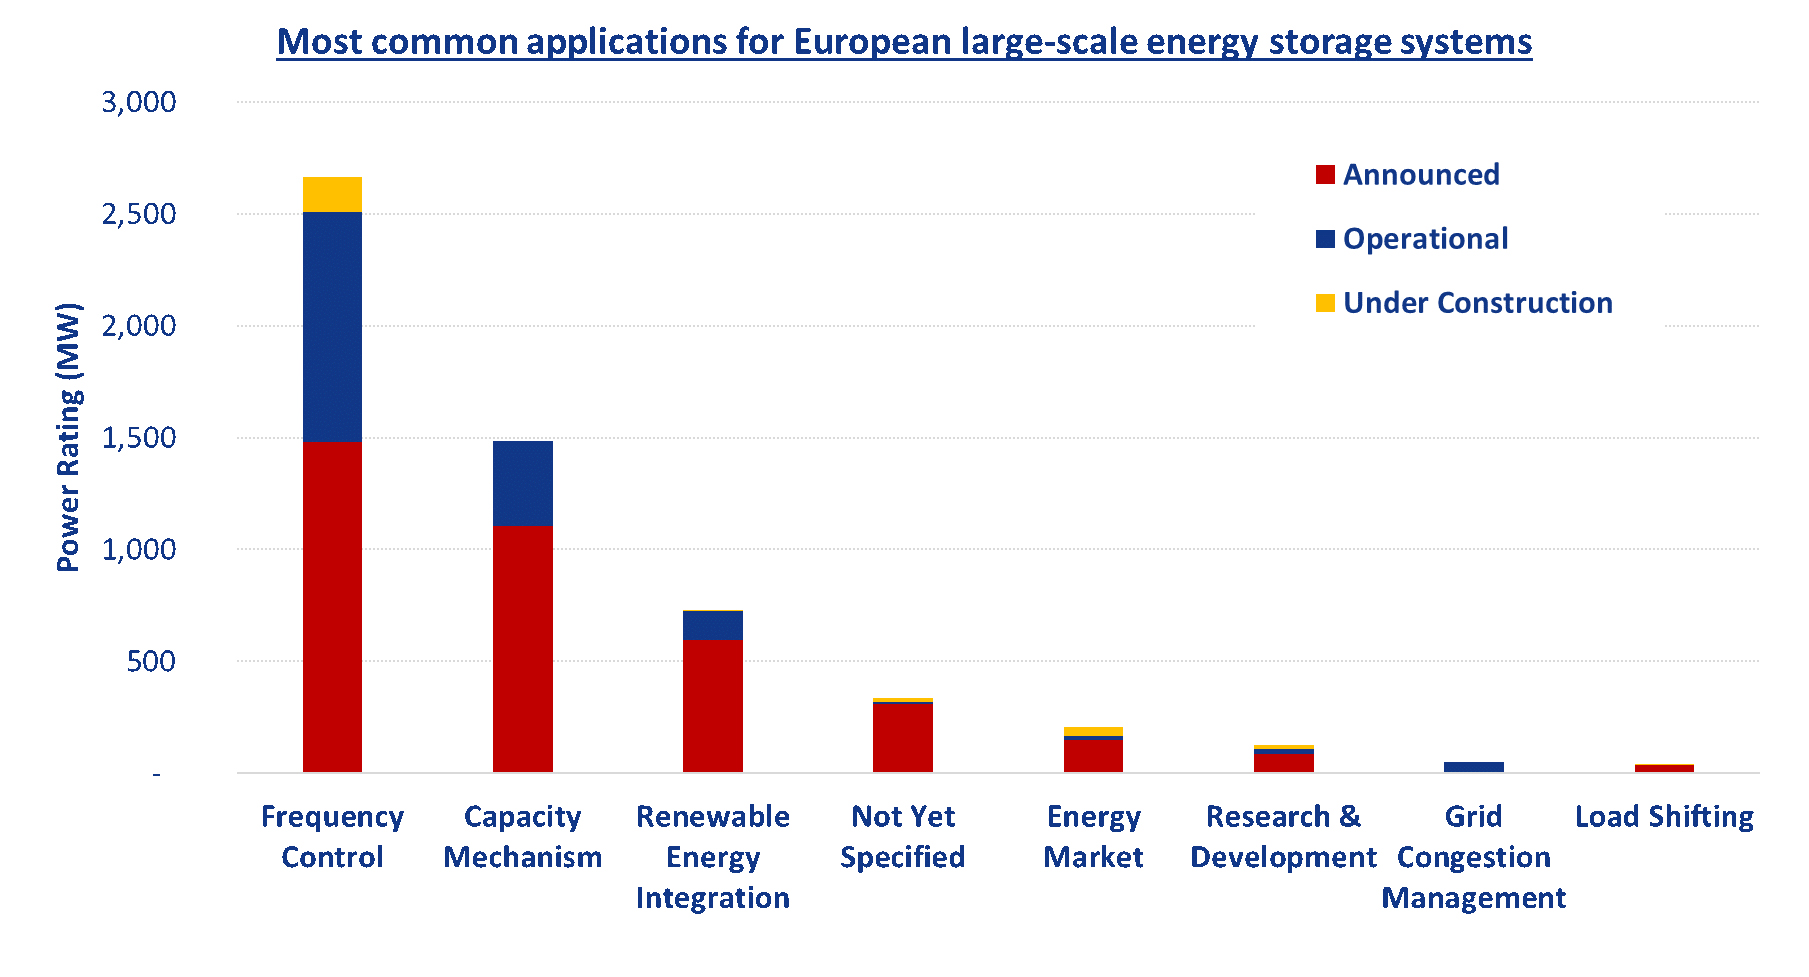 Figure 2. Most common applications for European large-scale energy storage systems